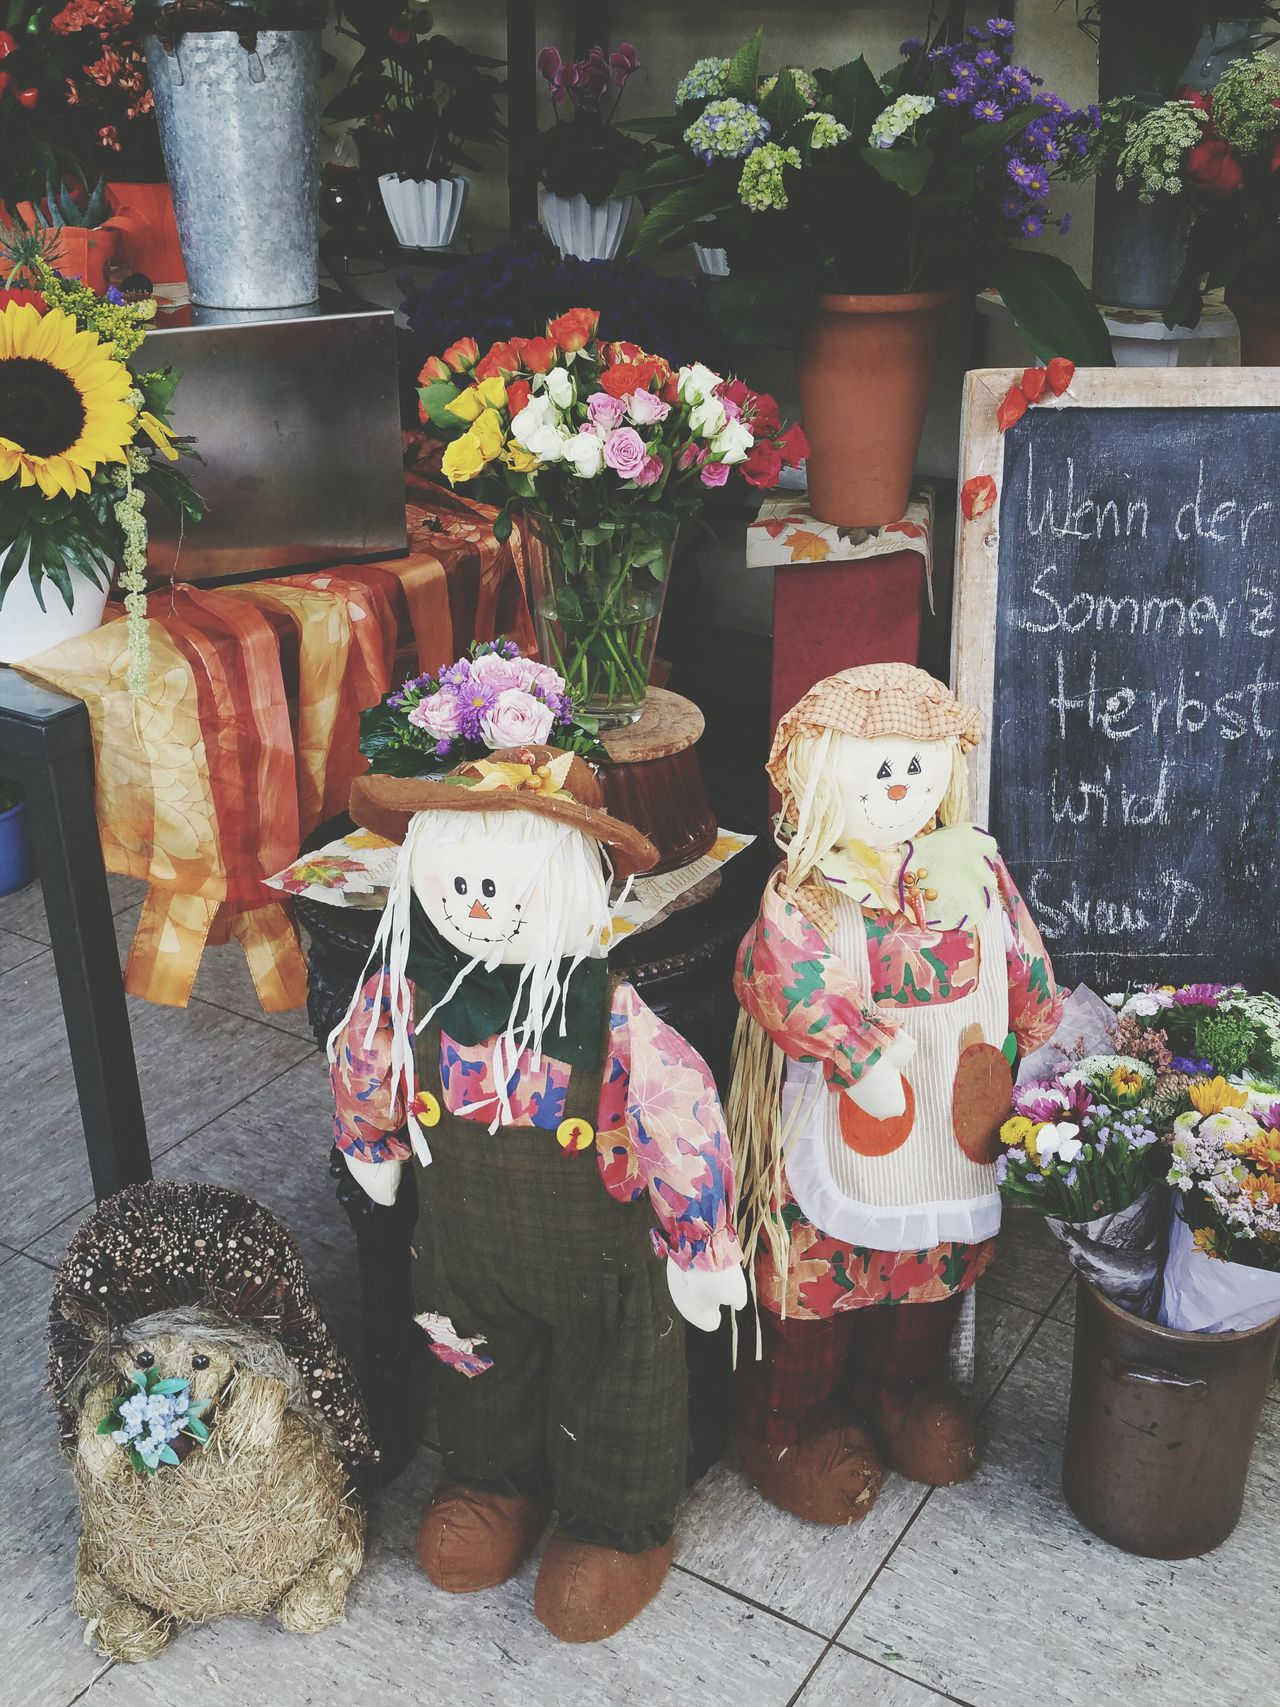 Flower Shop Flower For Sale Small Business Large Group Of Objects Shop StillLife Autumndecoration Dolls Decoration Autumn Multi Colored Indoors